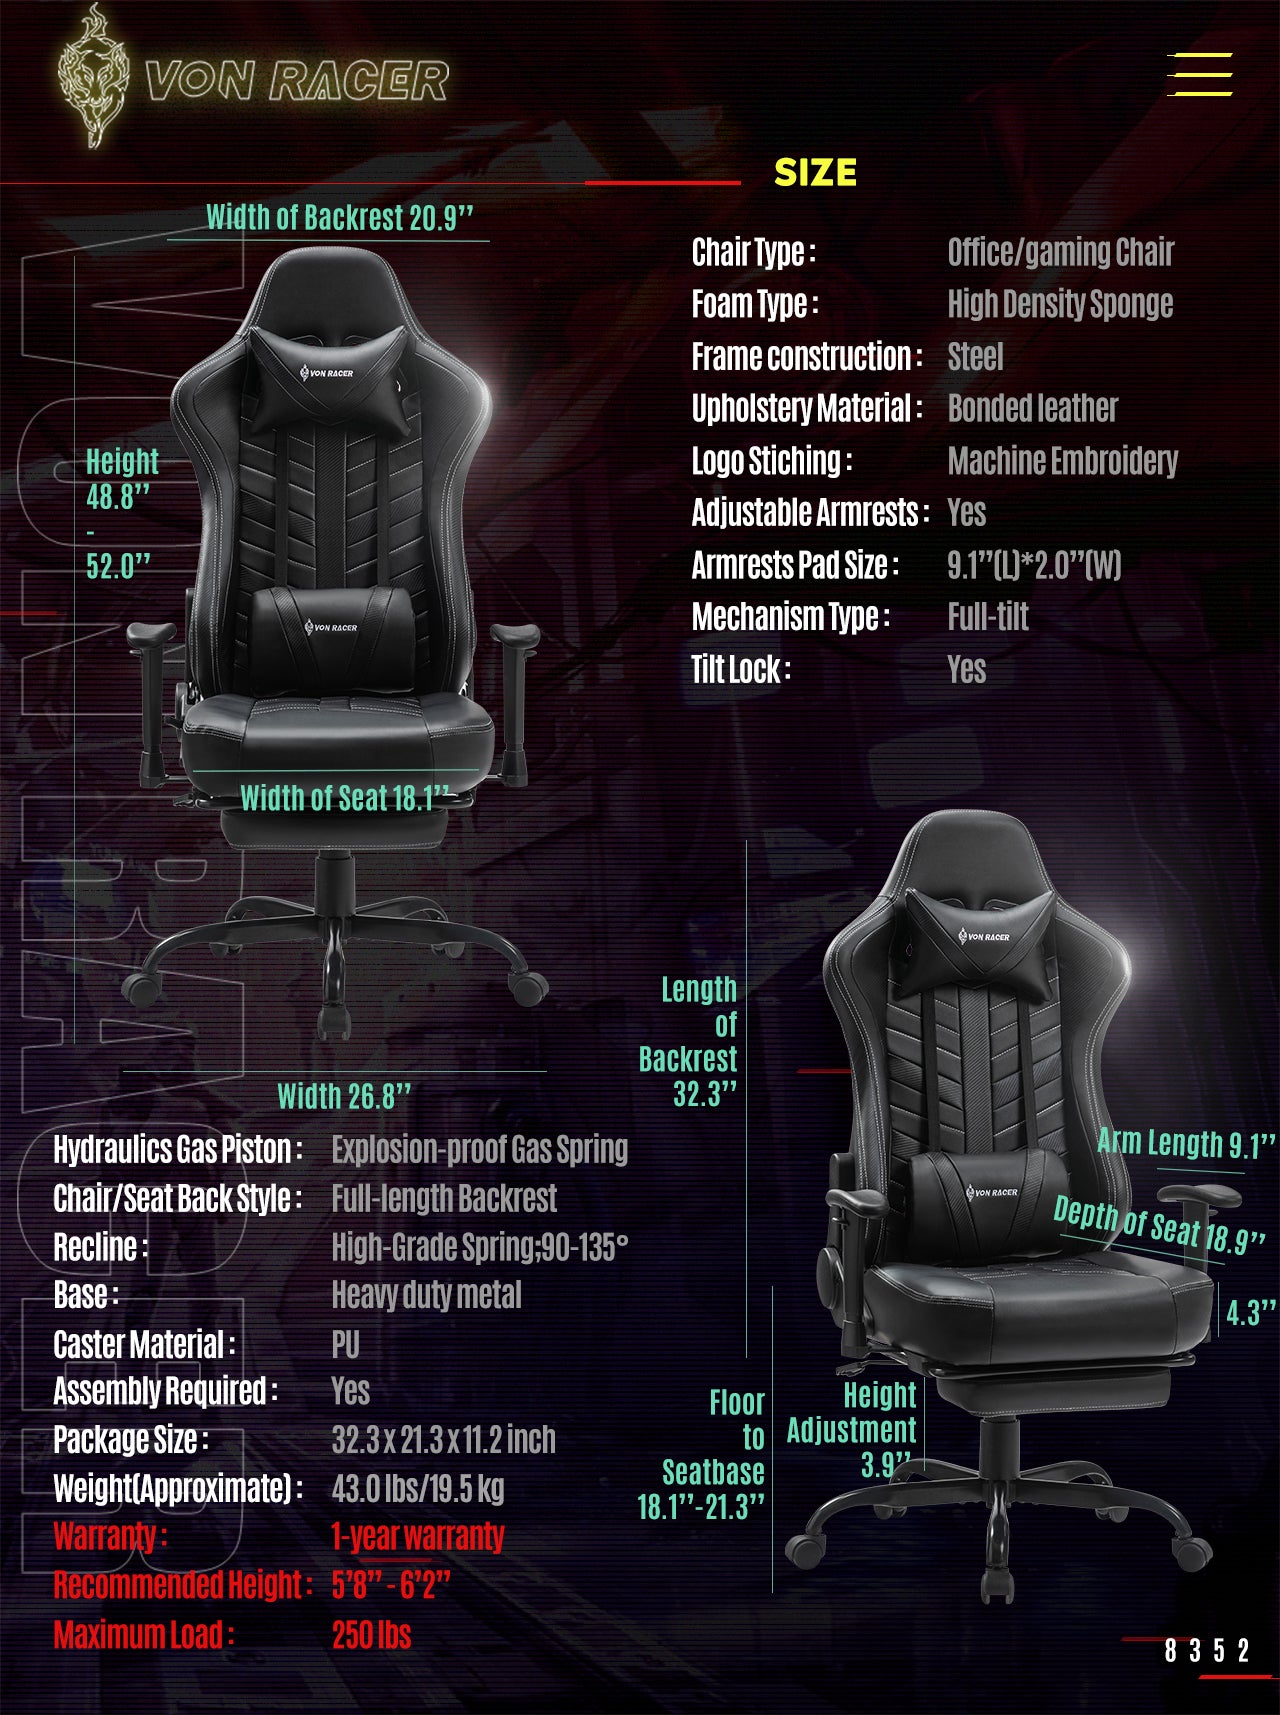 Von Racer Black Gaming Chair BEETLE 2020 Series Specifications